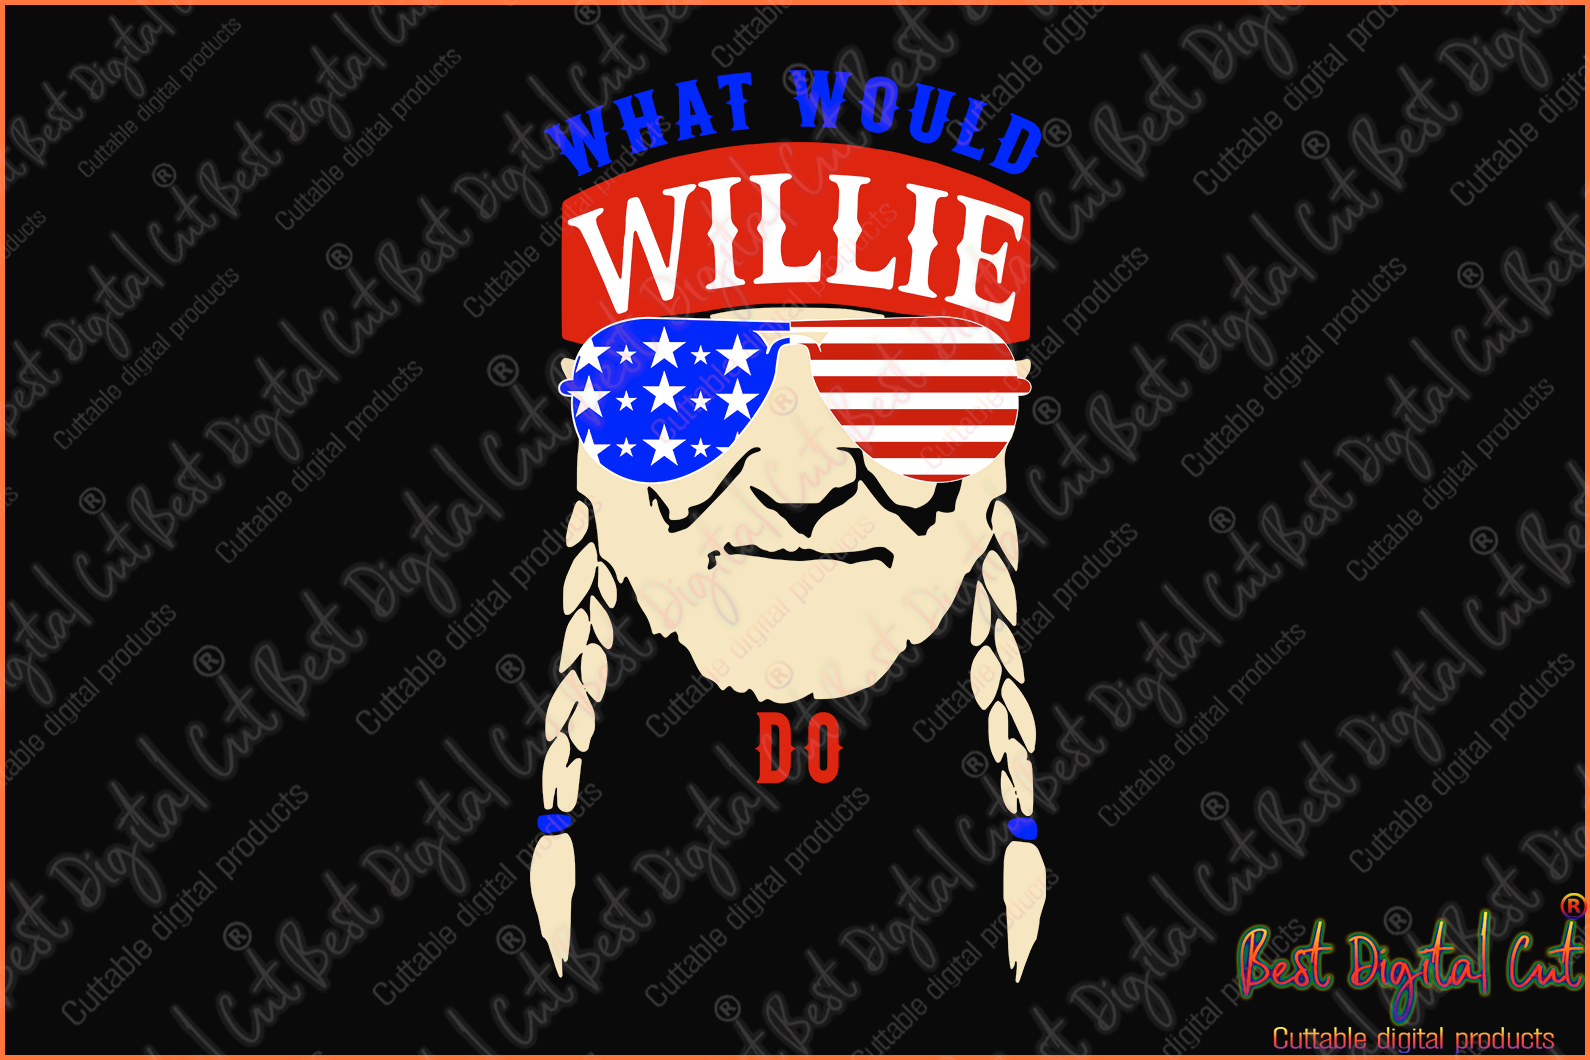 What would willie svg,freedom day svg,jubilee day svg,American holiday,June 19th svg,1776 July 4th,emancipation day svg,independence day svg,black African hands,American pride gift,black lives matter shirt,black history month